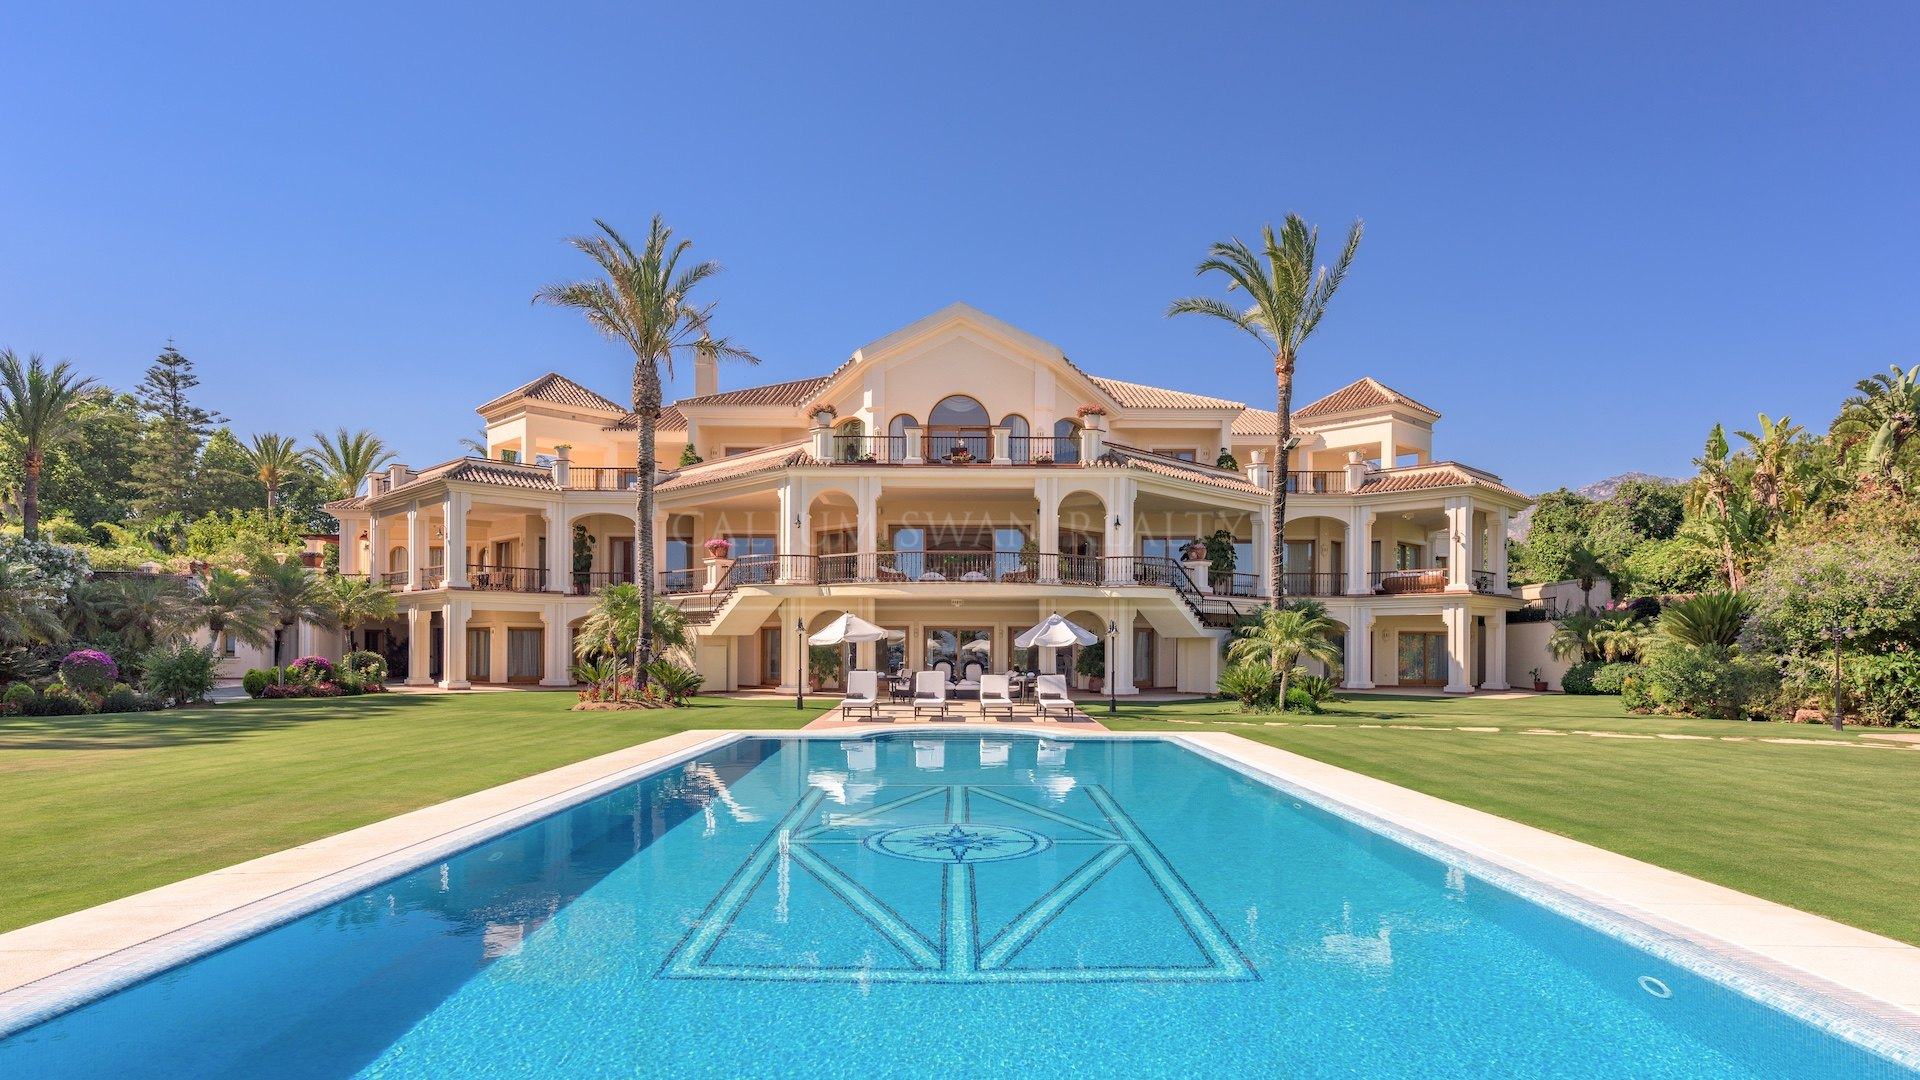 Impressive frontline beach property within the Marbella Club